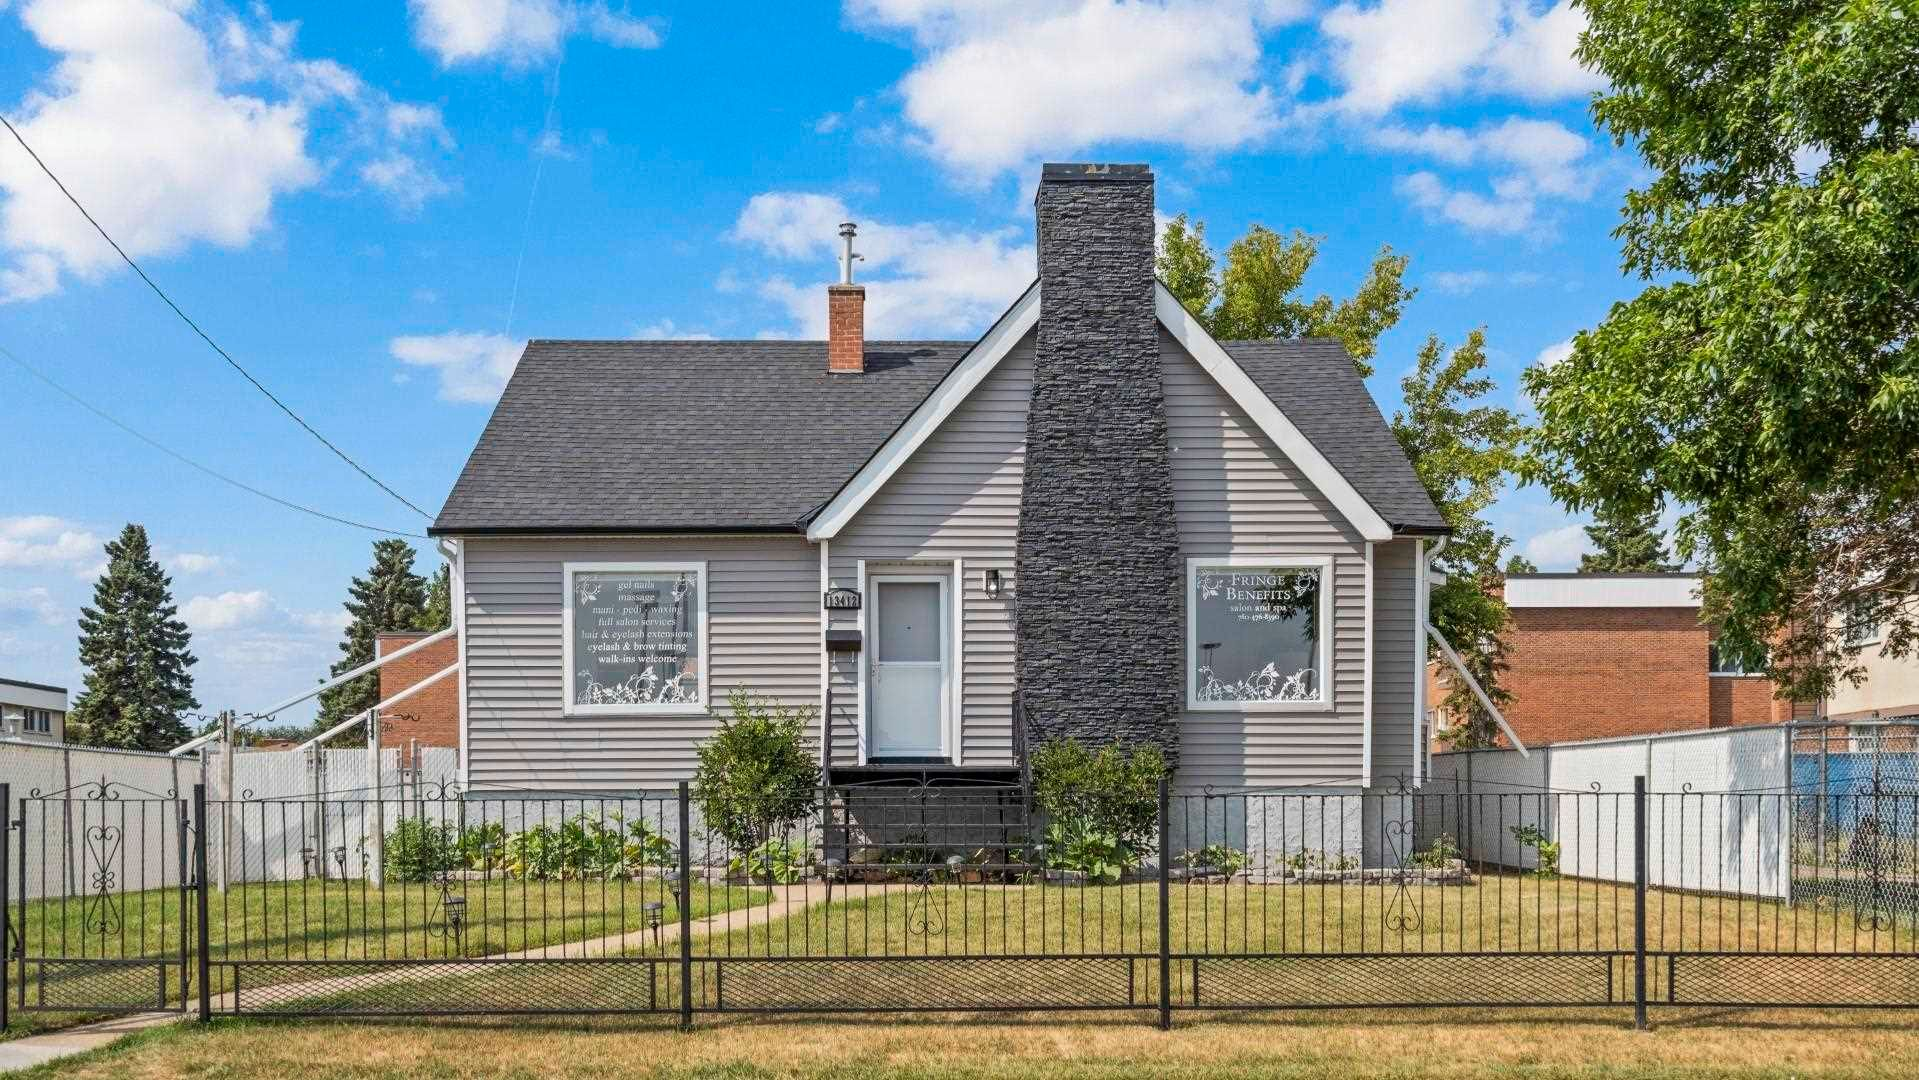 Main Photo: 13412 FORT Road in Edmonton: Zone 02 House for sale : MLS®# E4265889